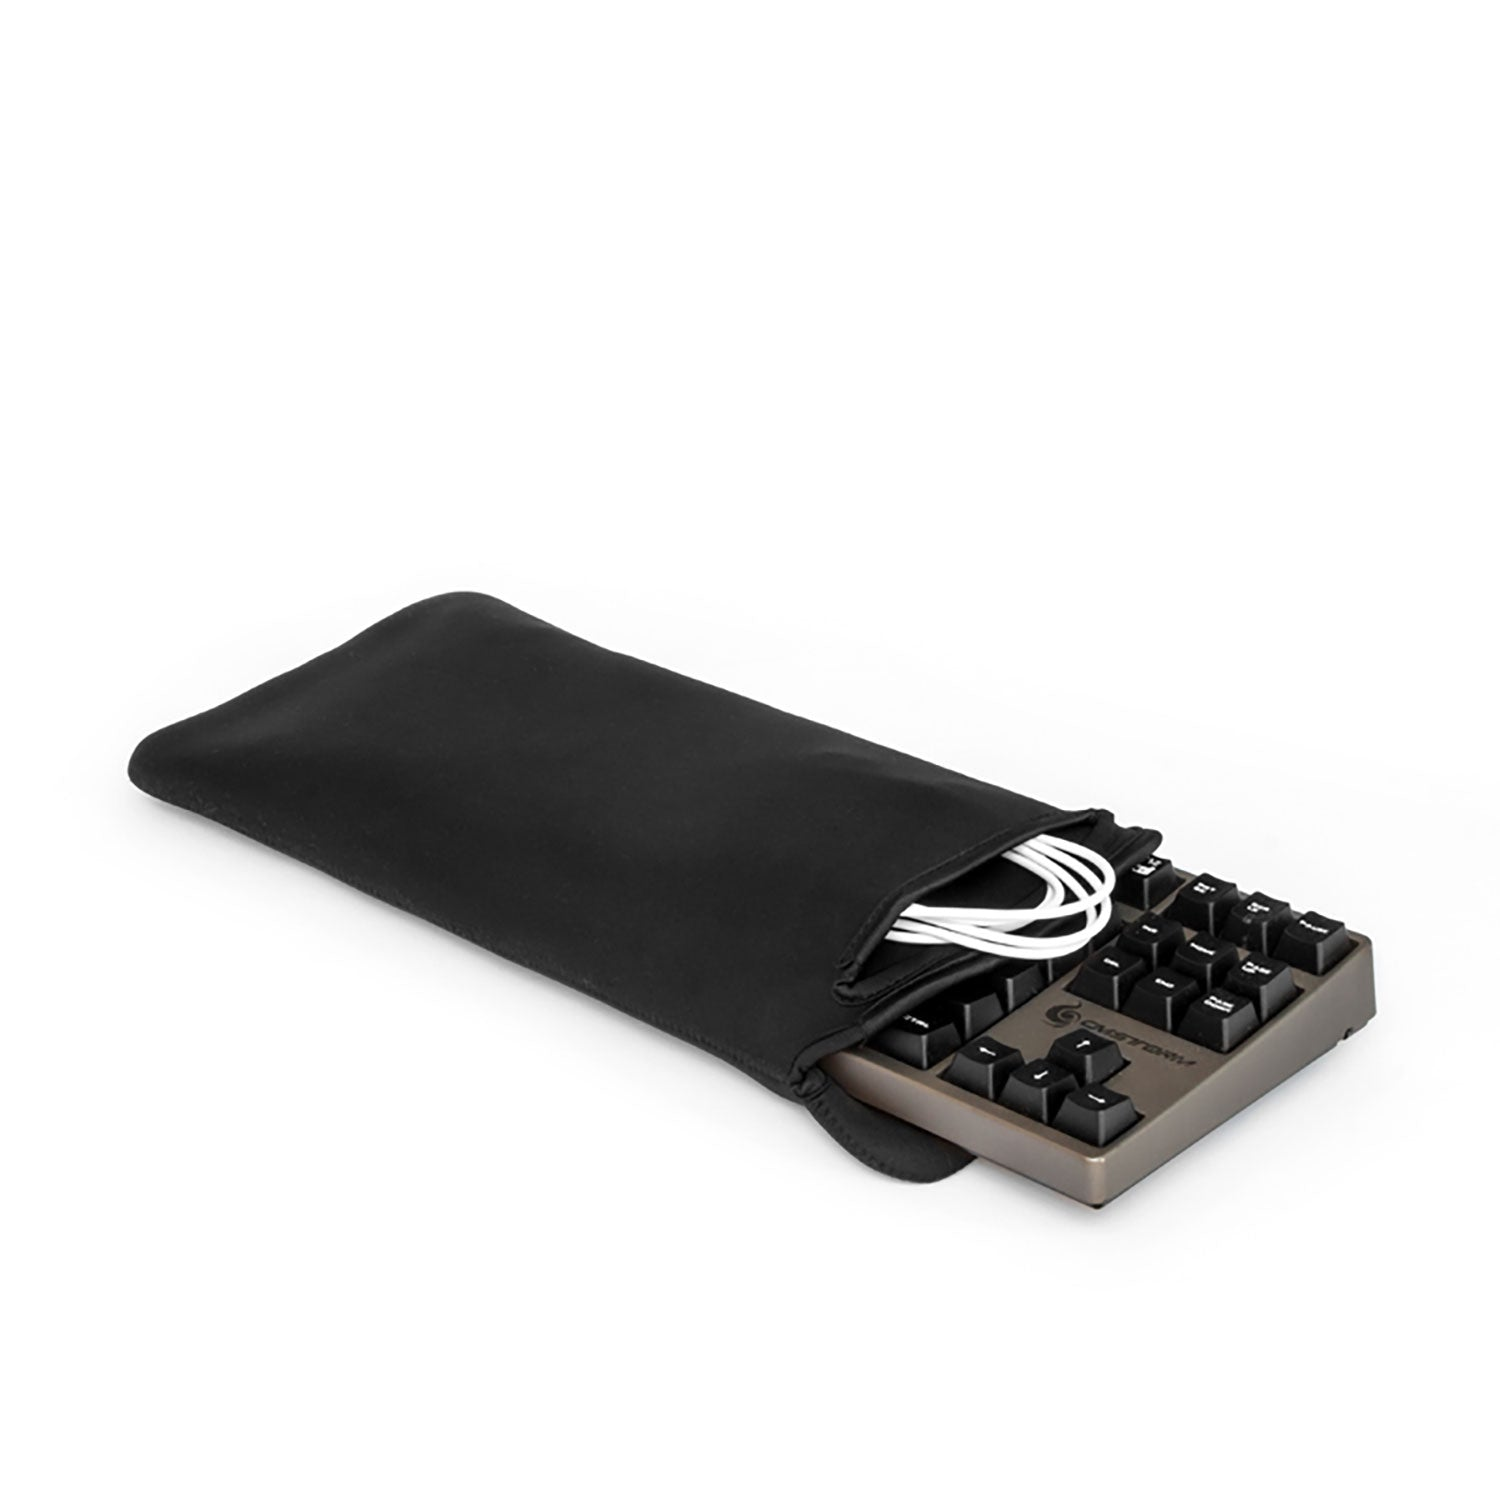 Grifiti Chiton Fat 14 Inch Tenkeyless Mechanical Keyboard Sleeve with Pocket - Grifiti